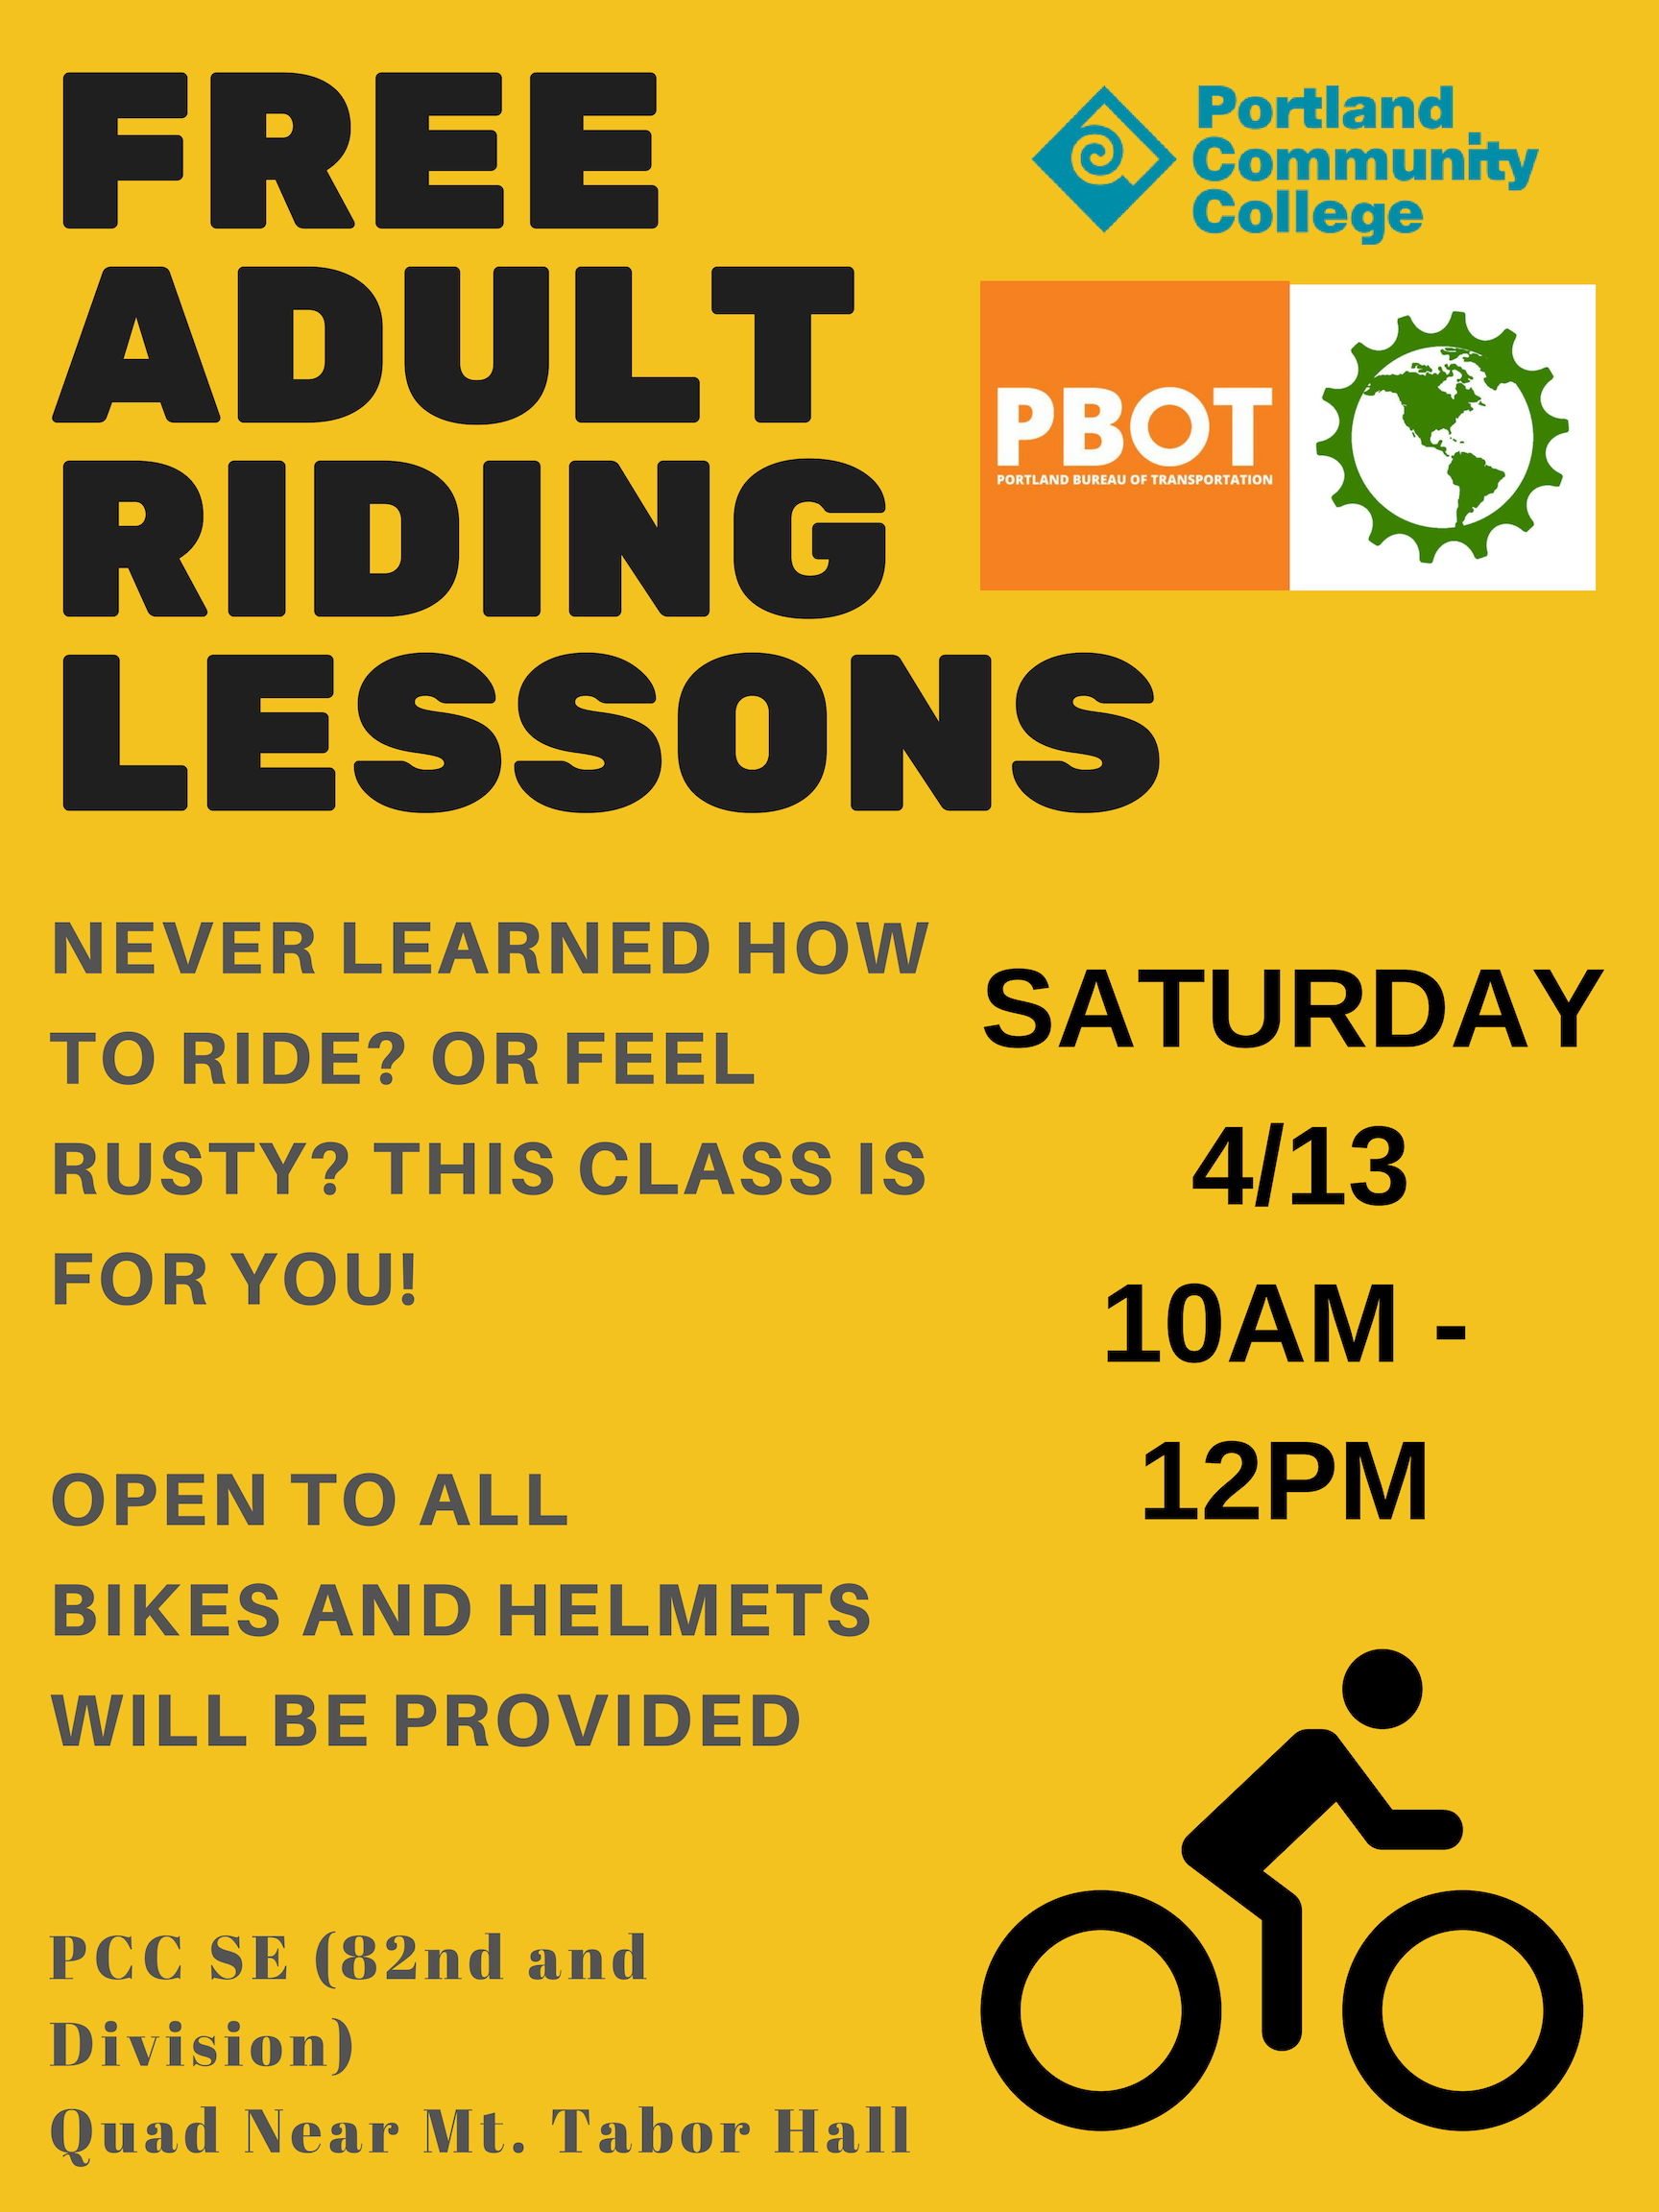 Image is a yellow poster with PCC, Bikes For Humanity PDX and PBOT's logos in the upper right-hand corner. The text on the poser reads: Free adult riding lessons, Saturday, 4/13, 10 AM to 12 PM. Never learned how to ride or feel rusty? This class is for you! Open to all, bikes and helmets will be provided. PCC SE (82nd and Division, Quad near Mt. Tabor Hall.